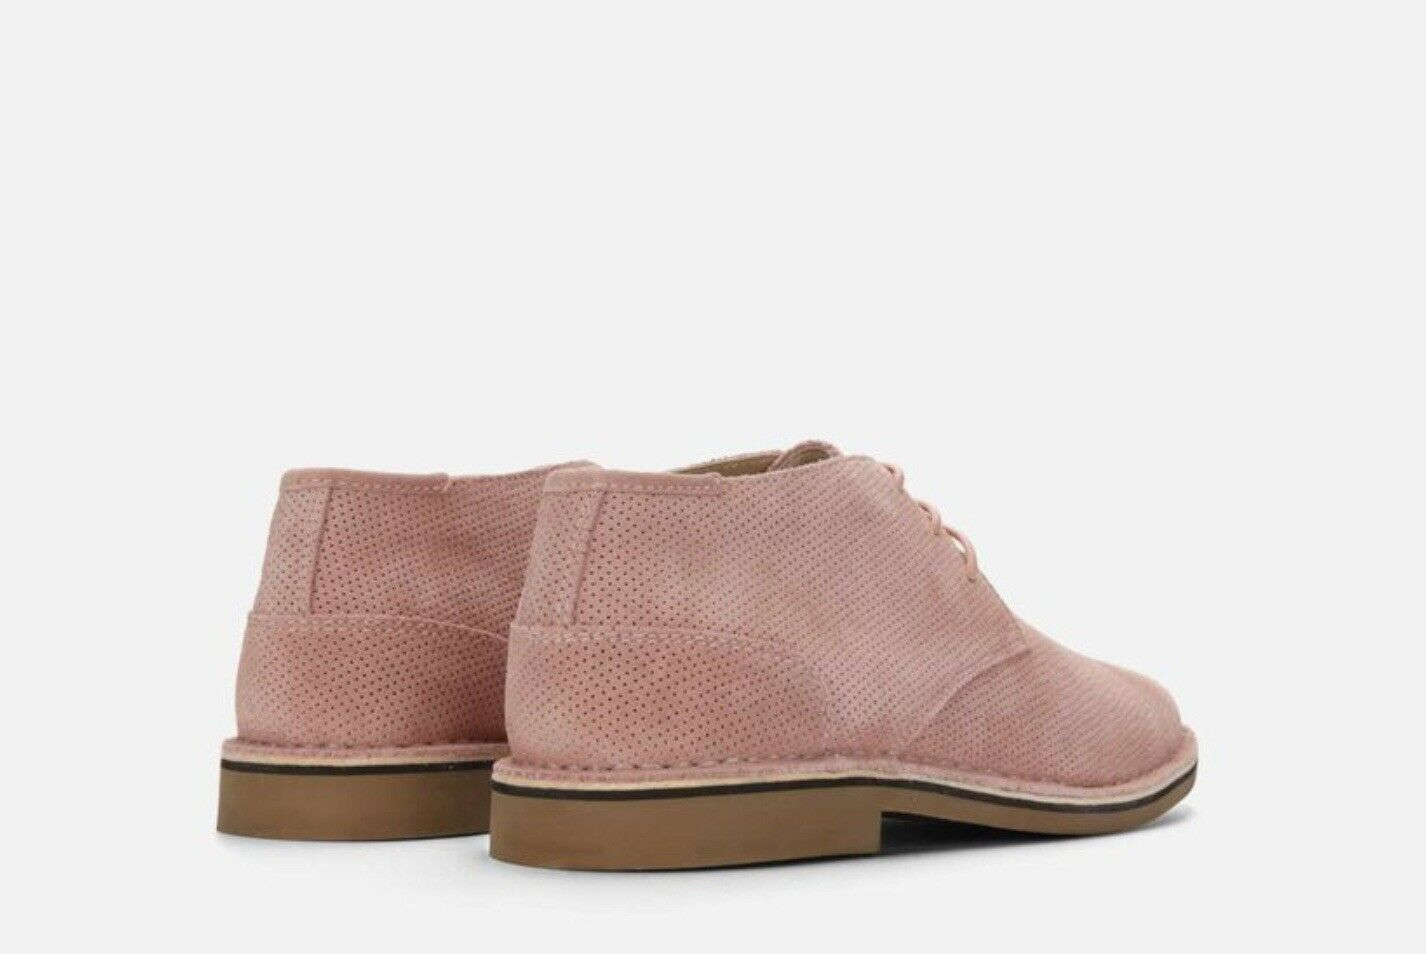 Men's Men's Men's DESERT SUN CHUKKA PERFORATED SUEDE Stiefel REACTION KENNETH COLE 47bfb9